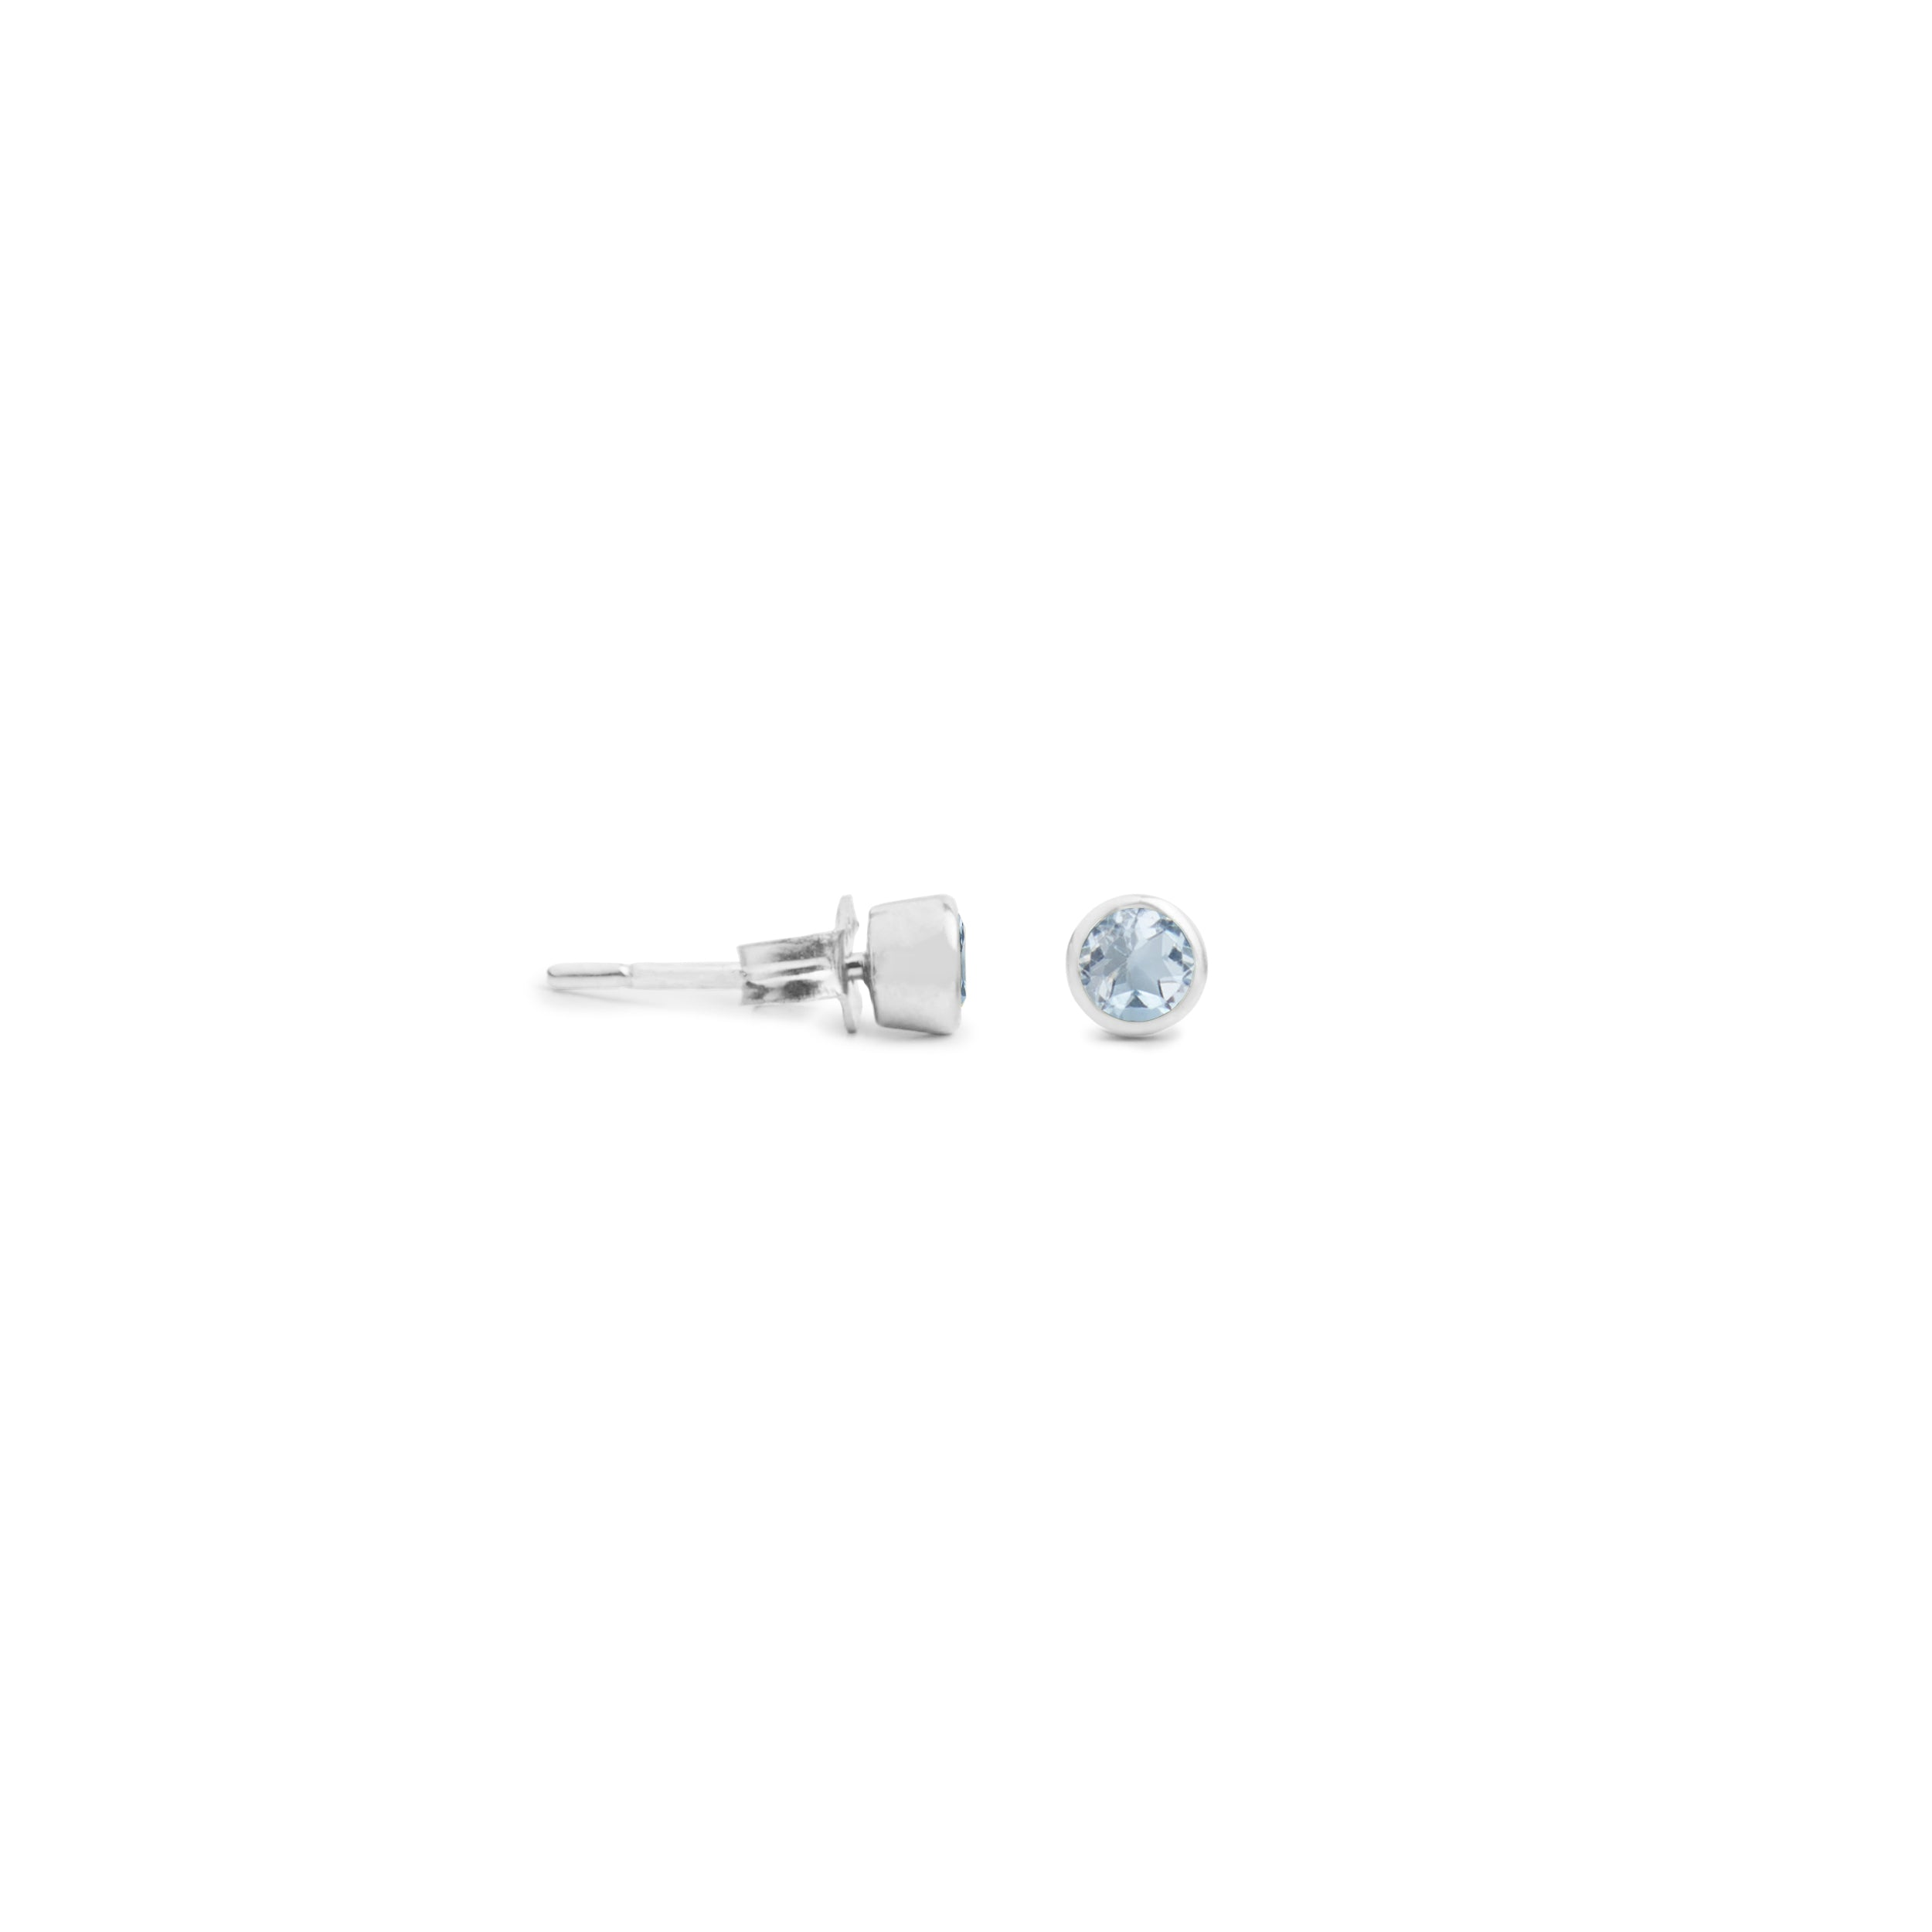 Acer Ear Stud in Silver with Blue Topaz